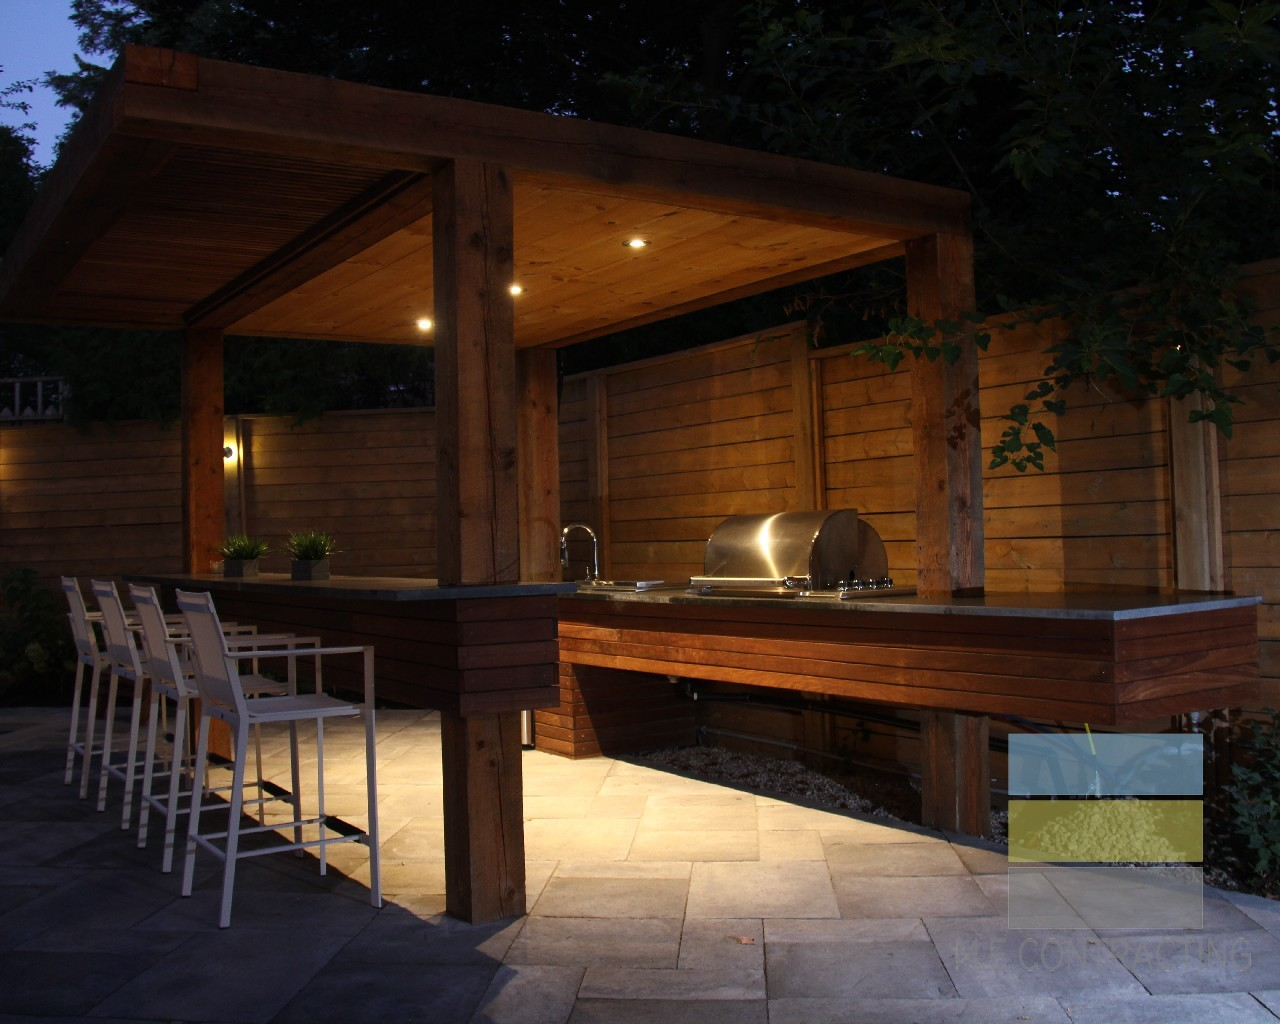 Wooden Deck Outdoor Kitchen Project